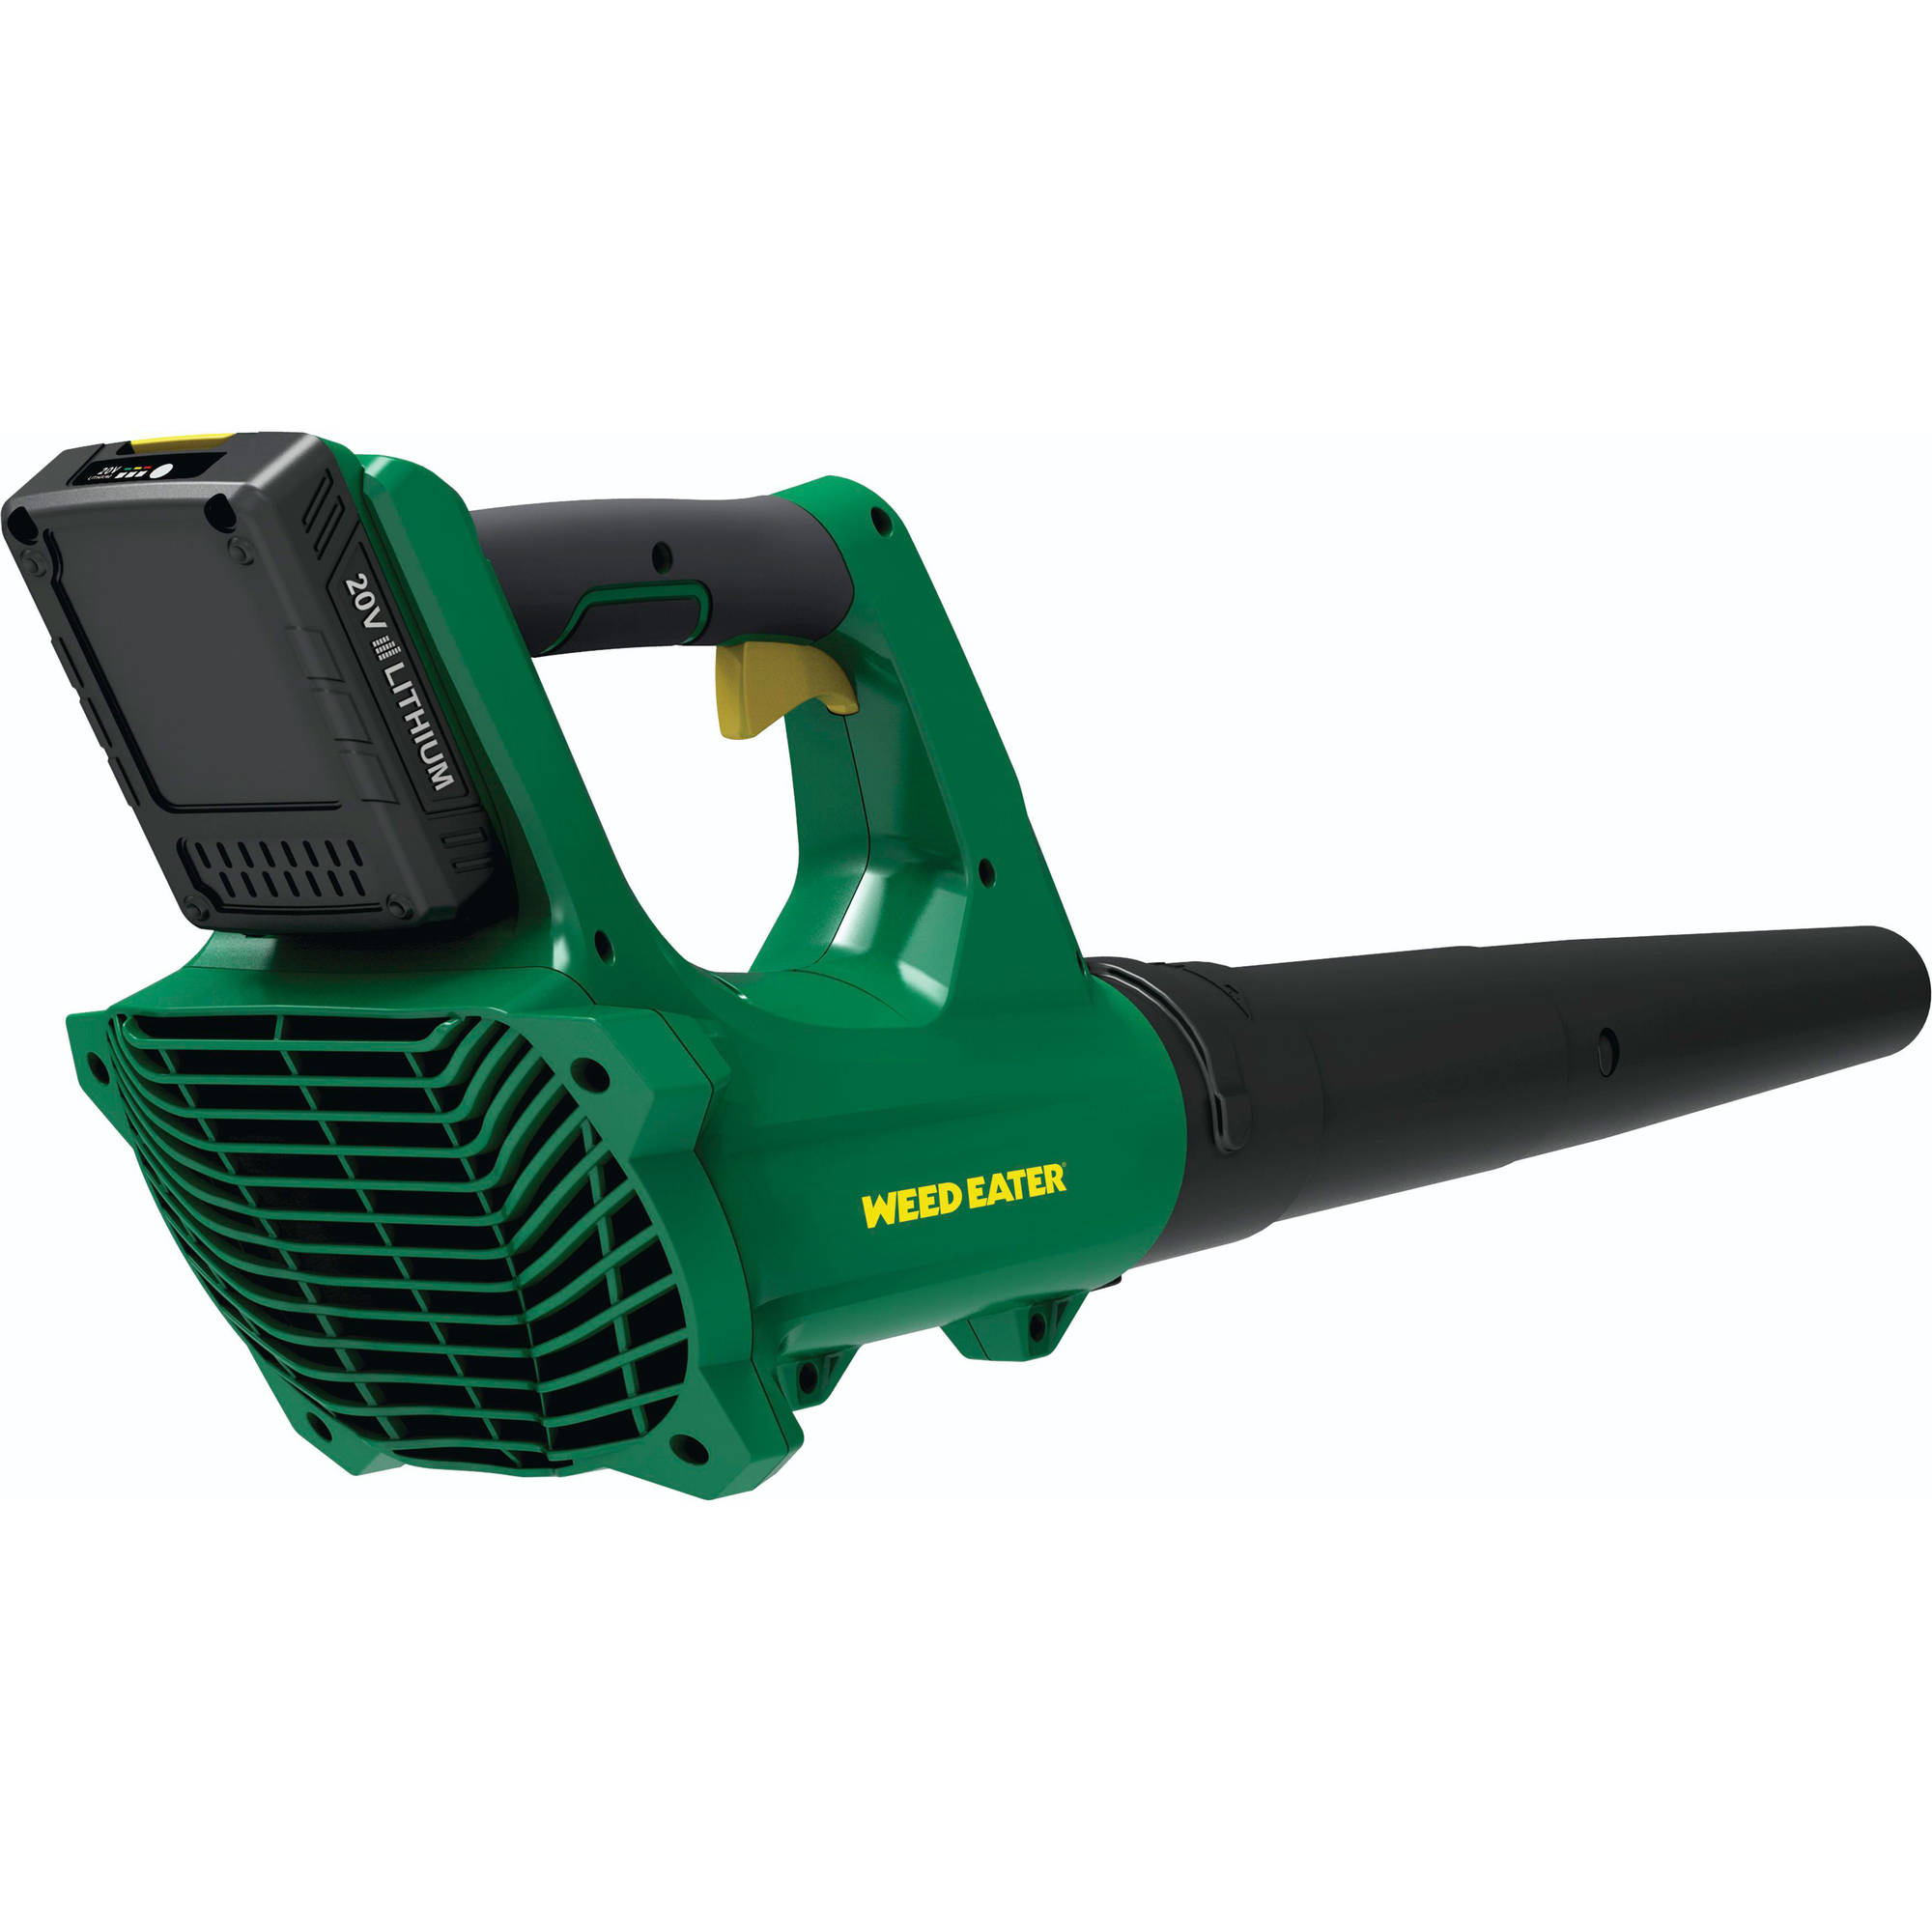 Weed Eater WE20VB 85 MPH 20V Lithium-Ion Rechargeable Battery Powered Blower/Sweeper